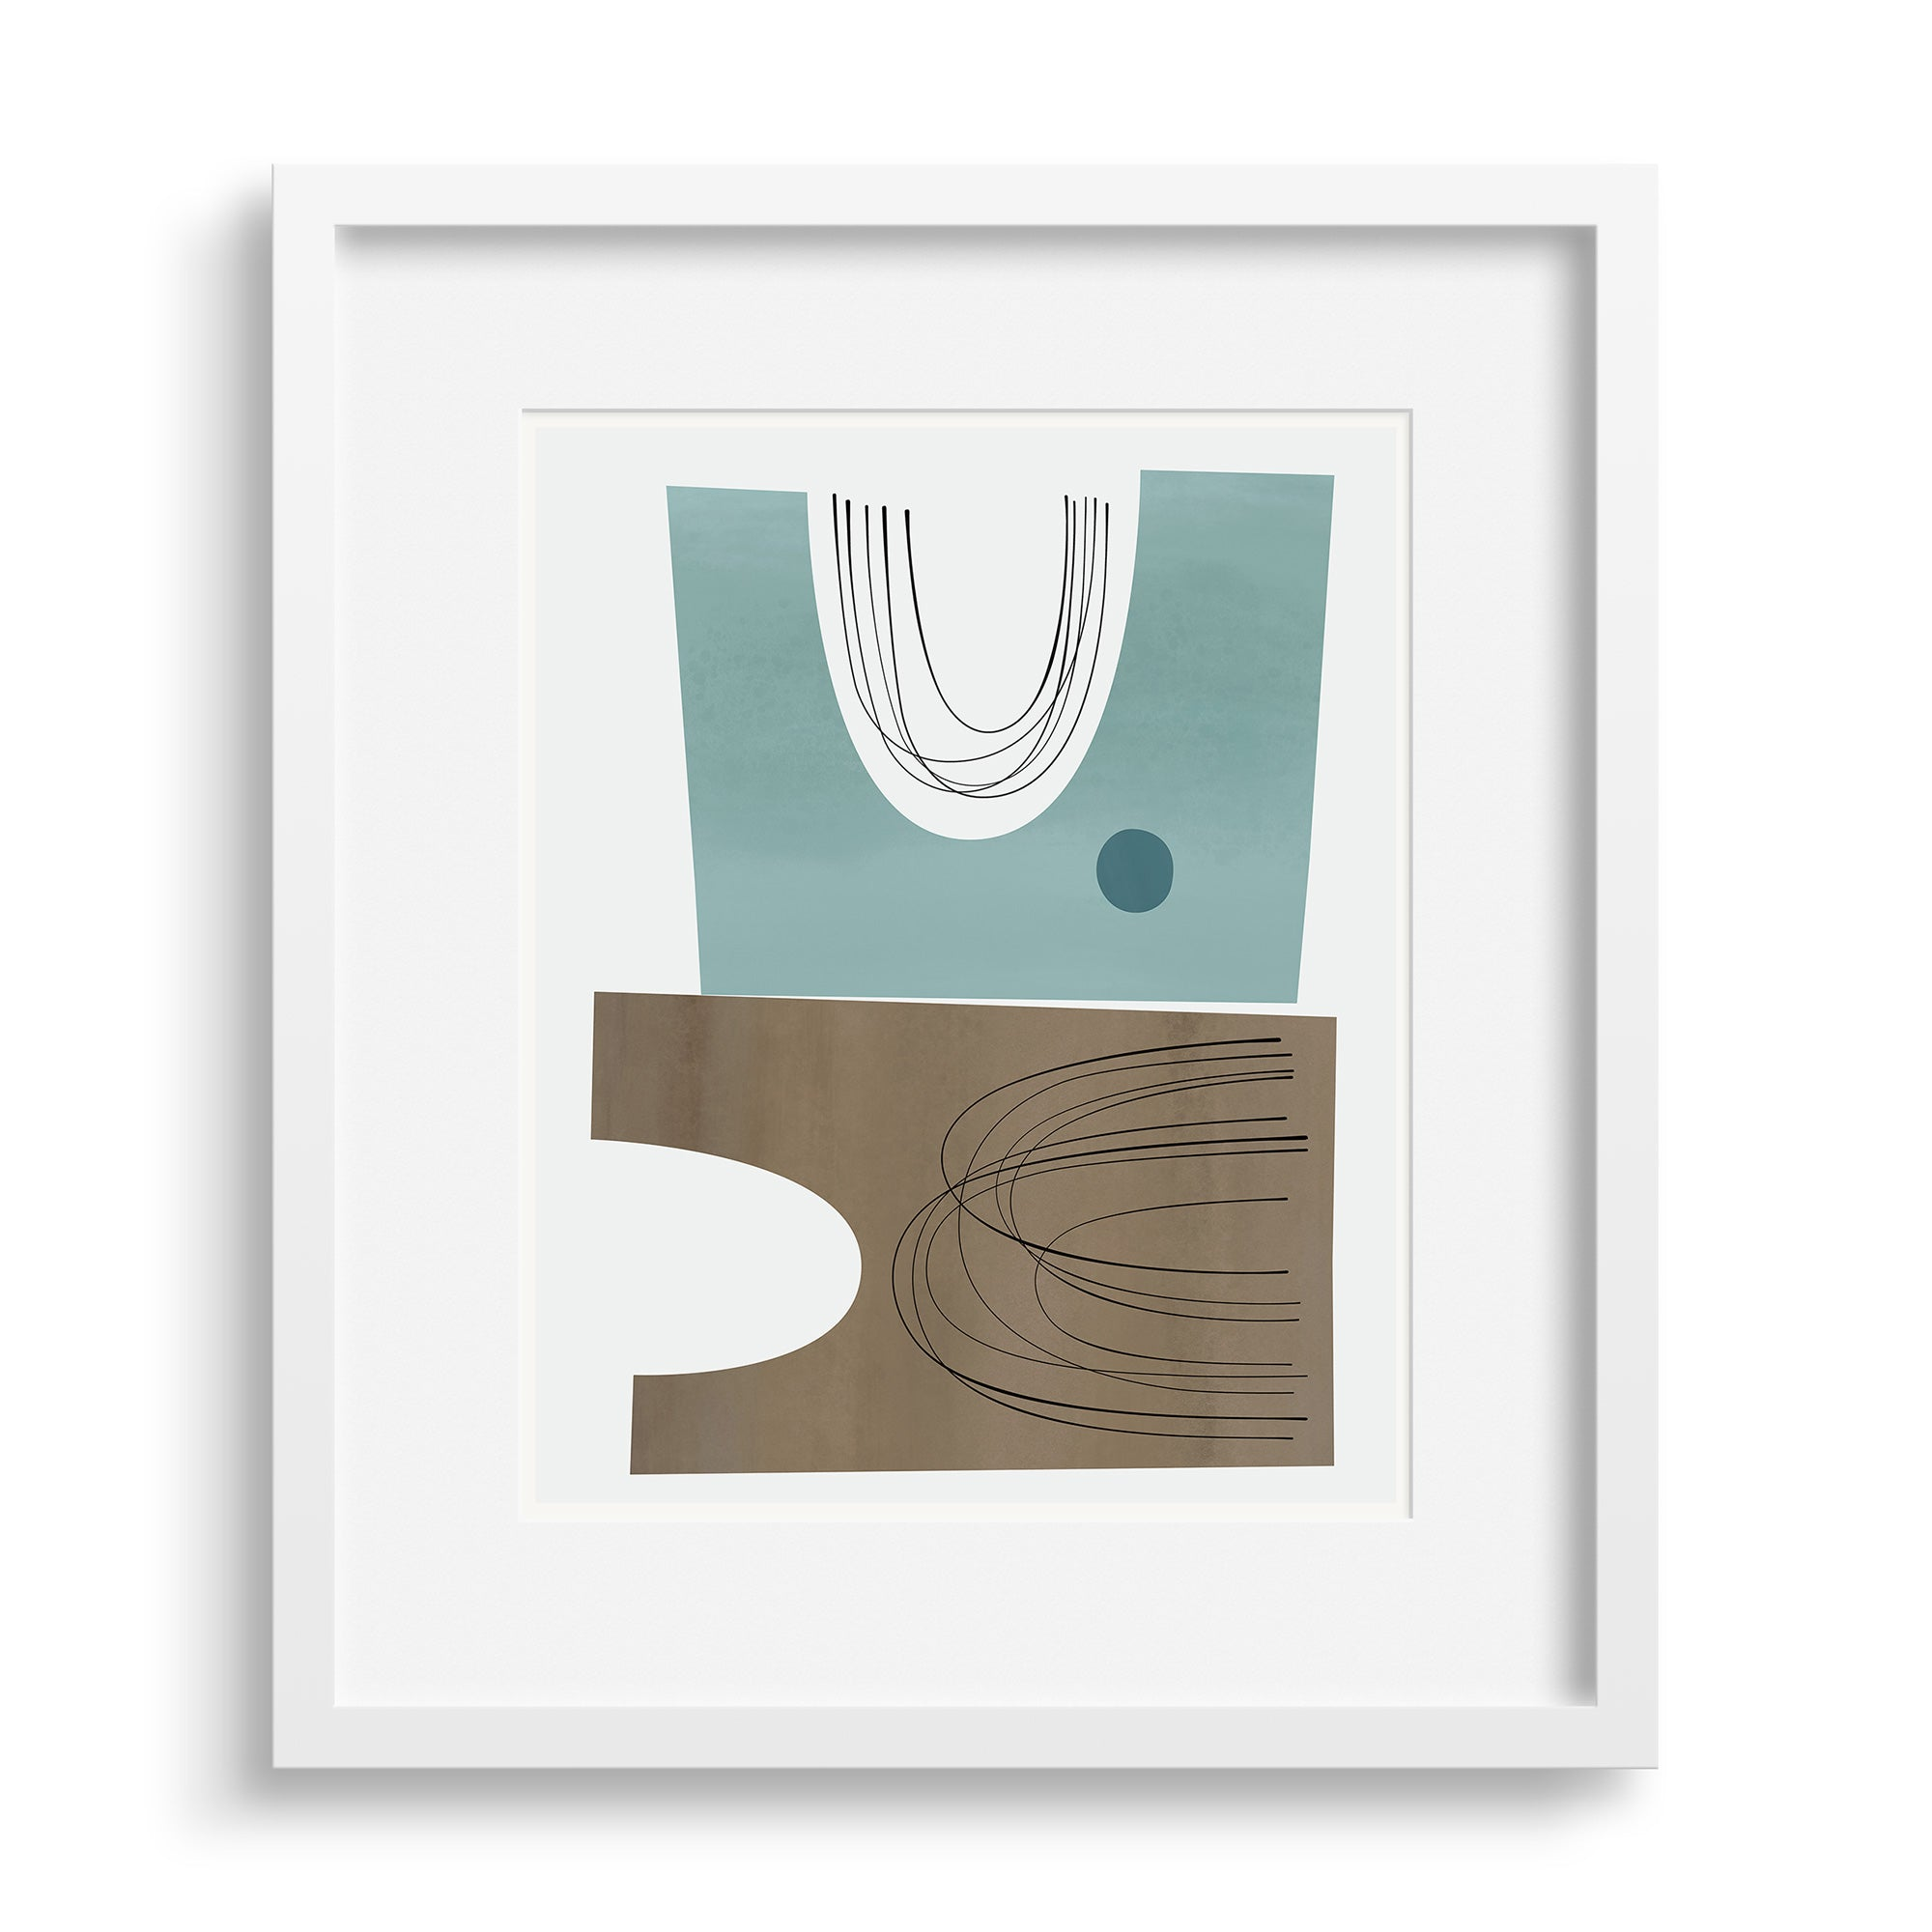 All The Things print by Janet Taylor in a white frame.